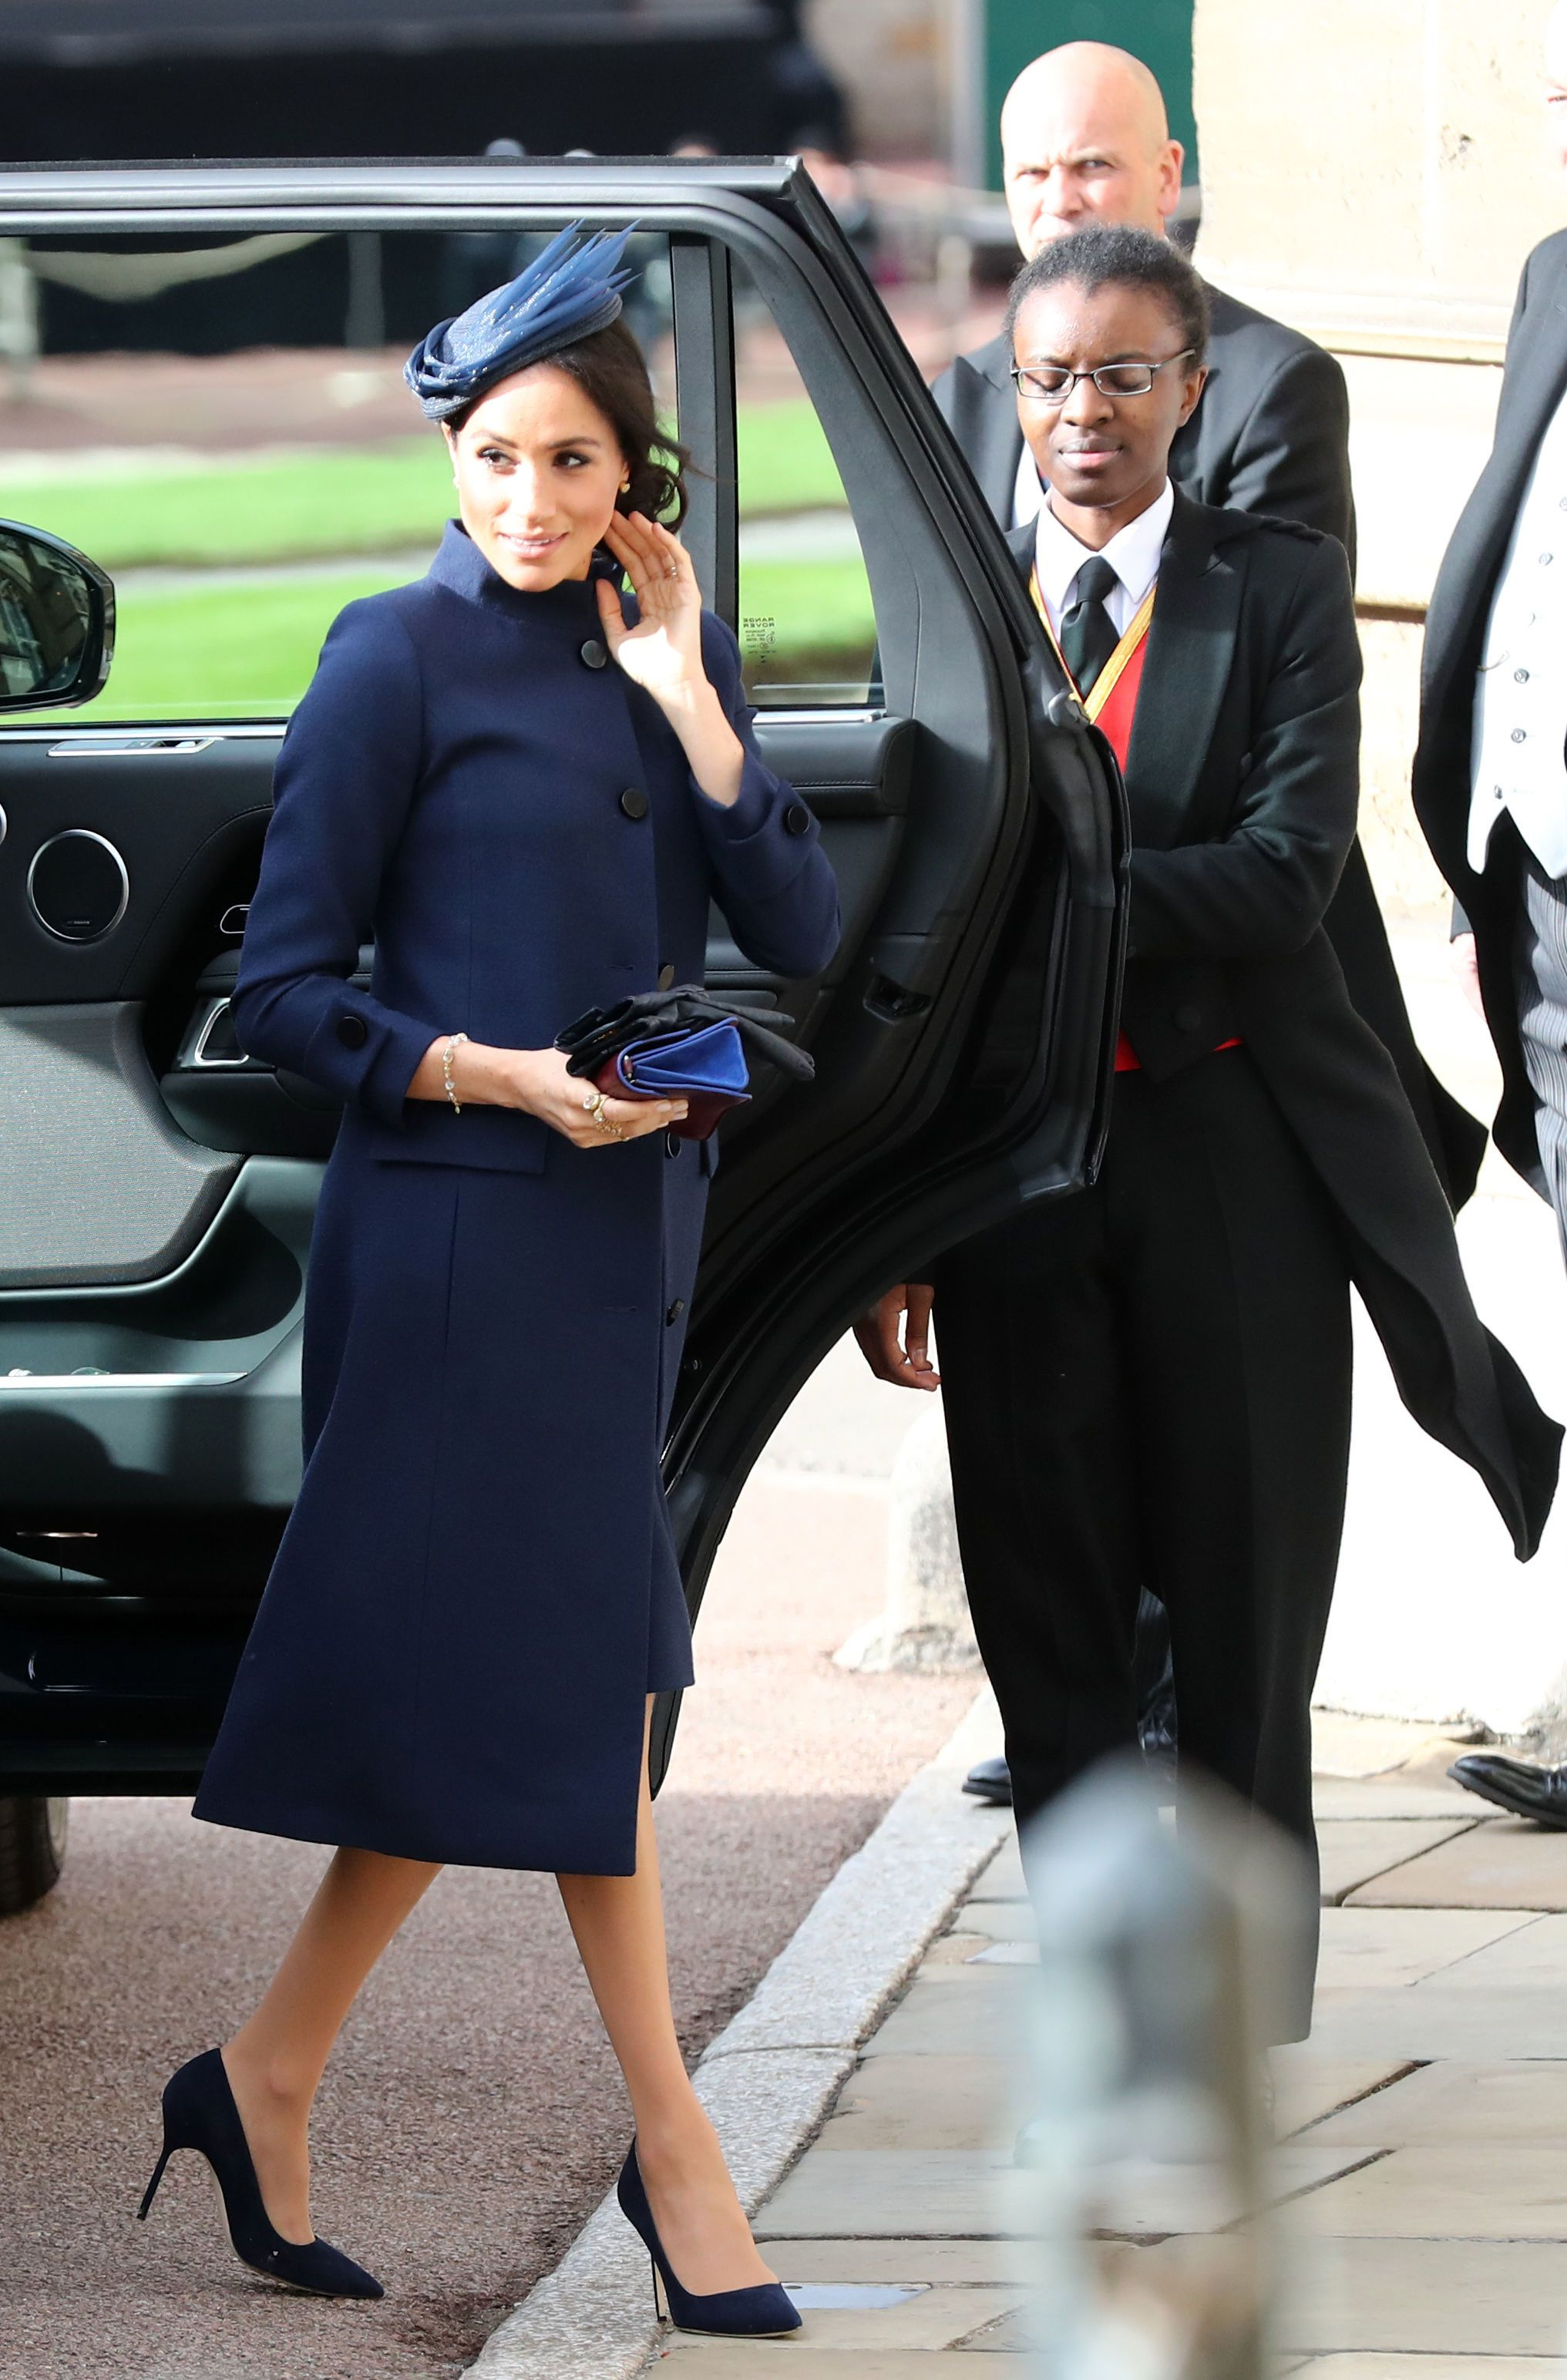 Why people think Meghan Markle is pregnant after her appearance at Eugenie's wedding